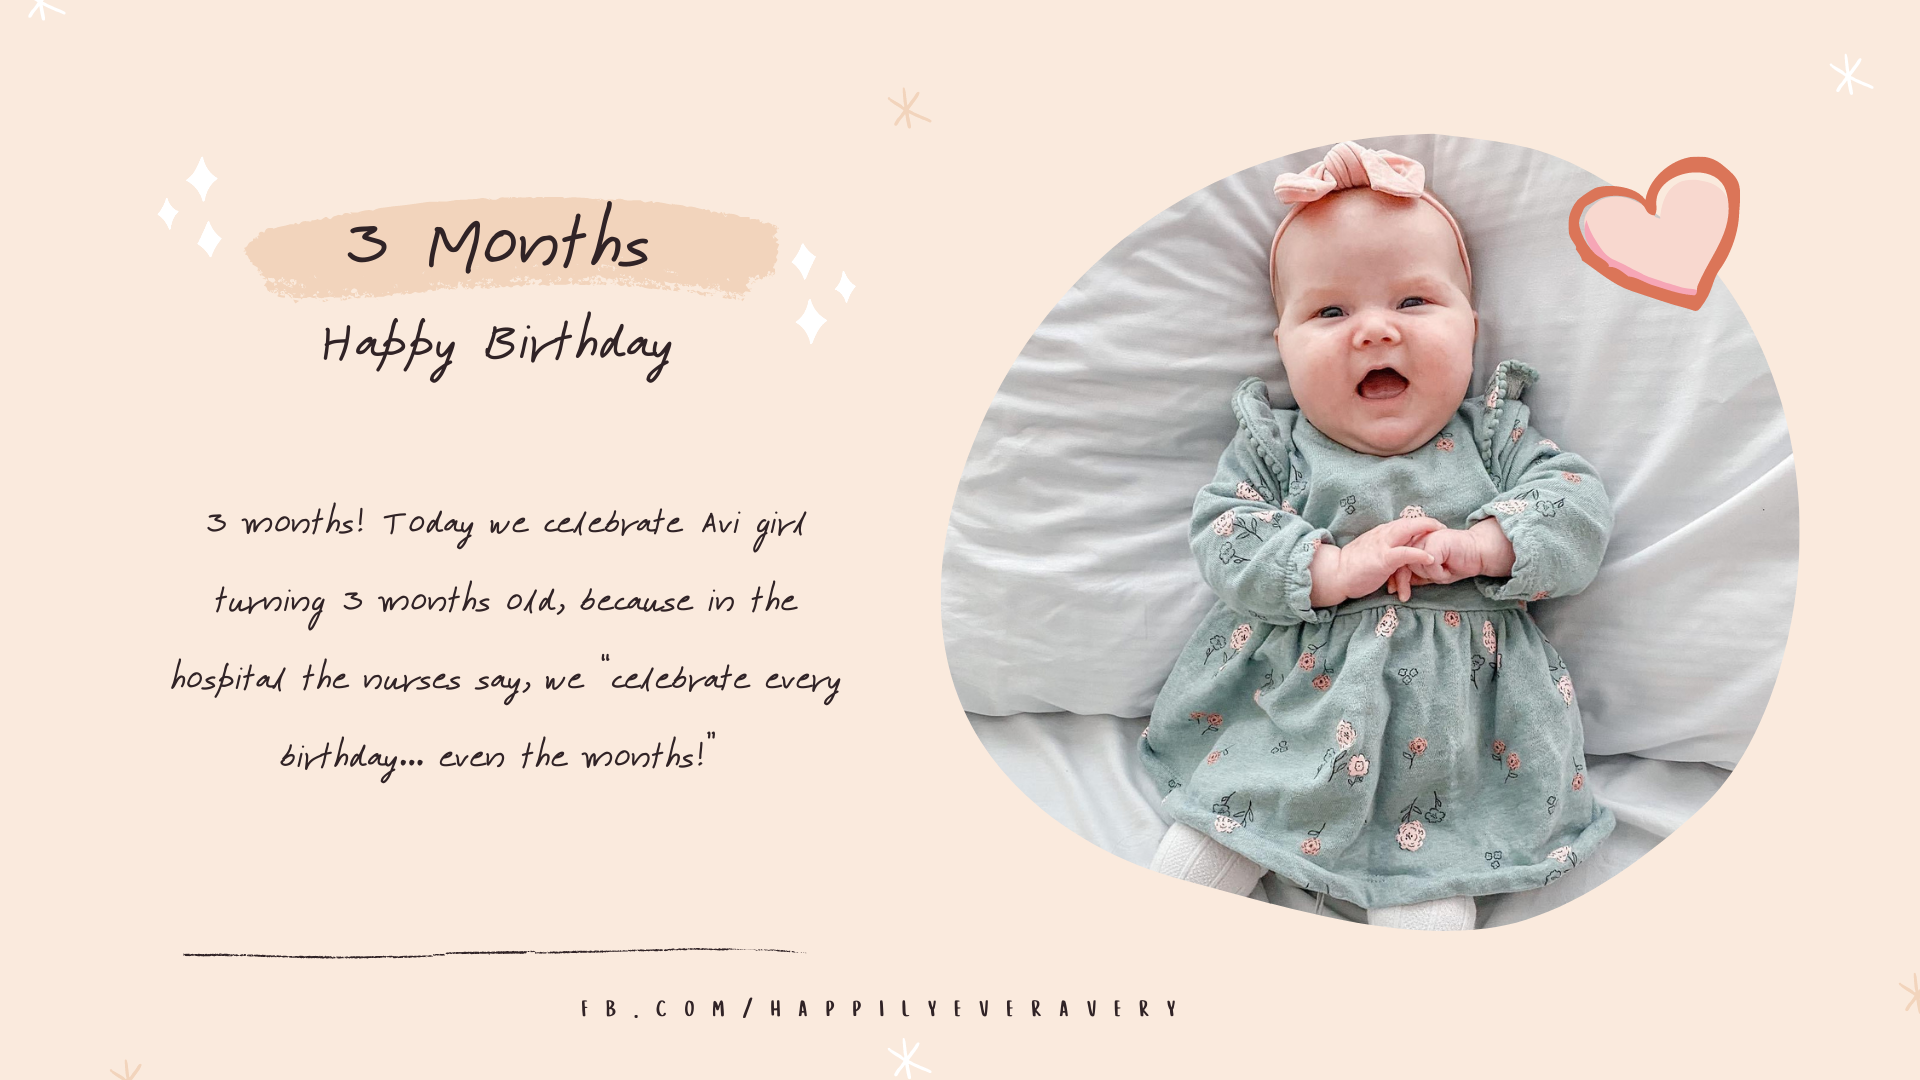 Happily Ever Avery // Happy 3 Months Birthday!